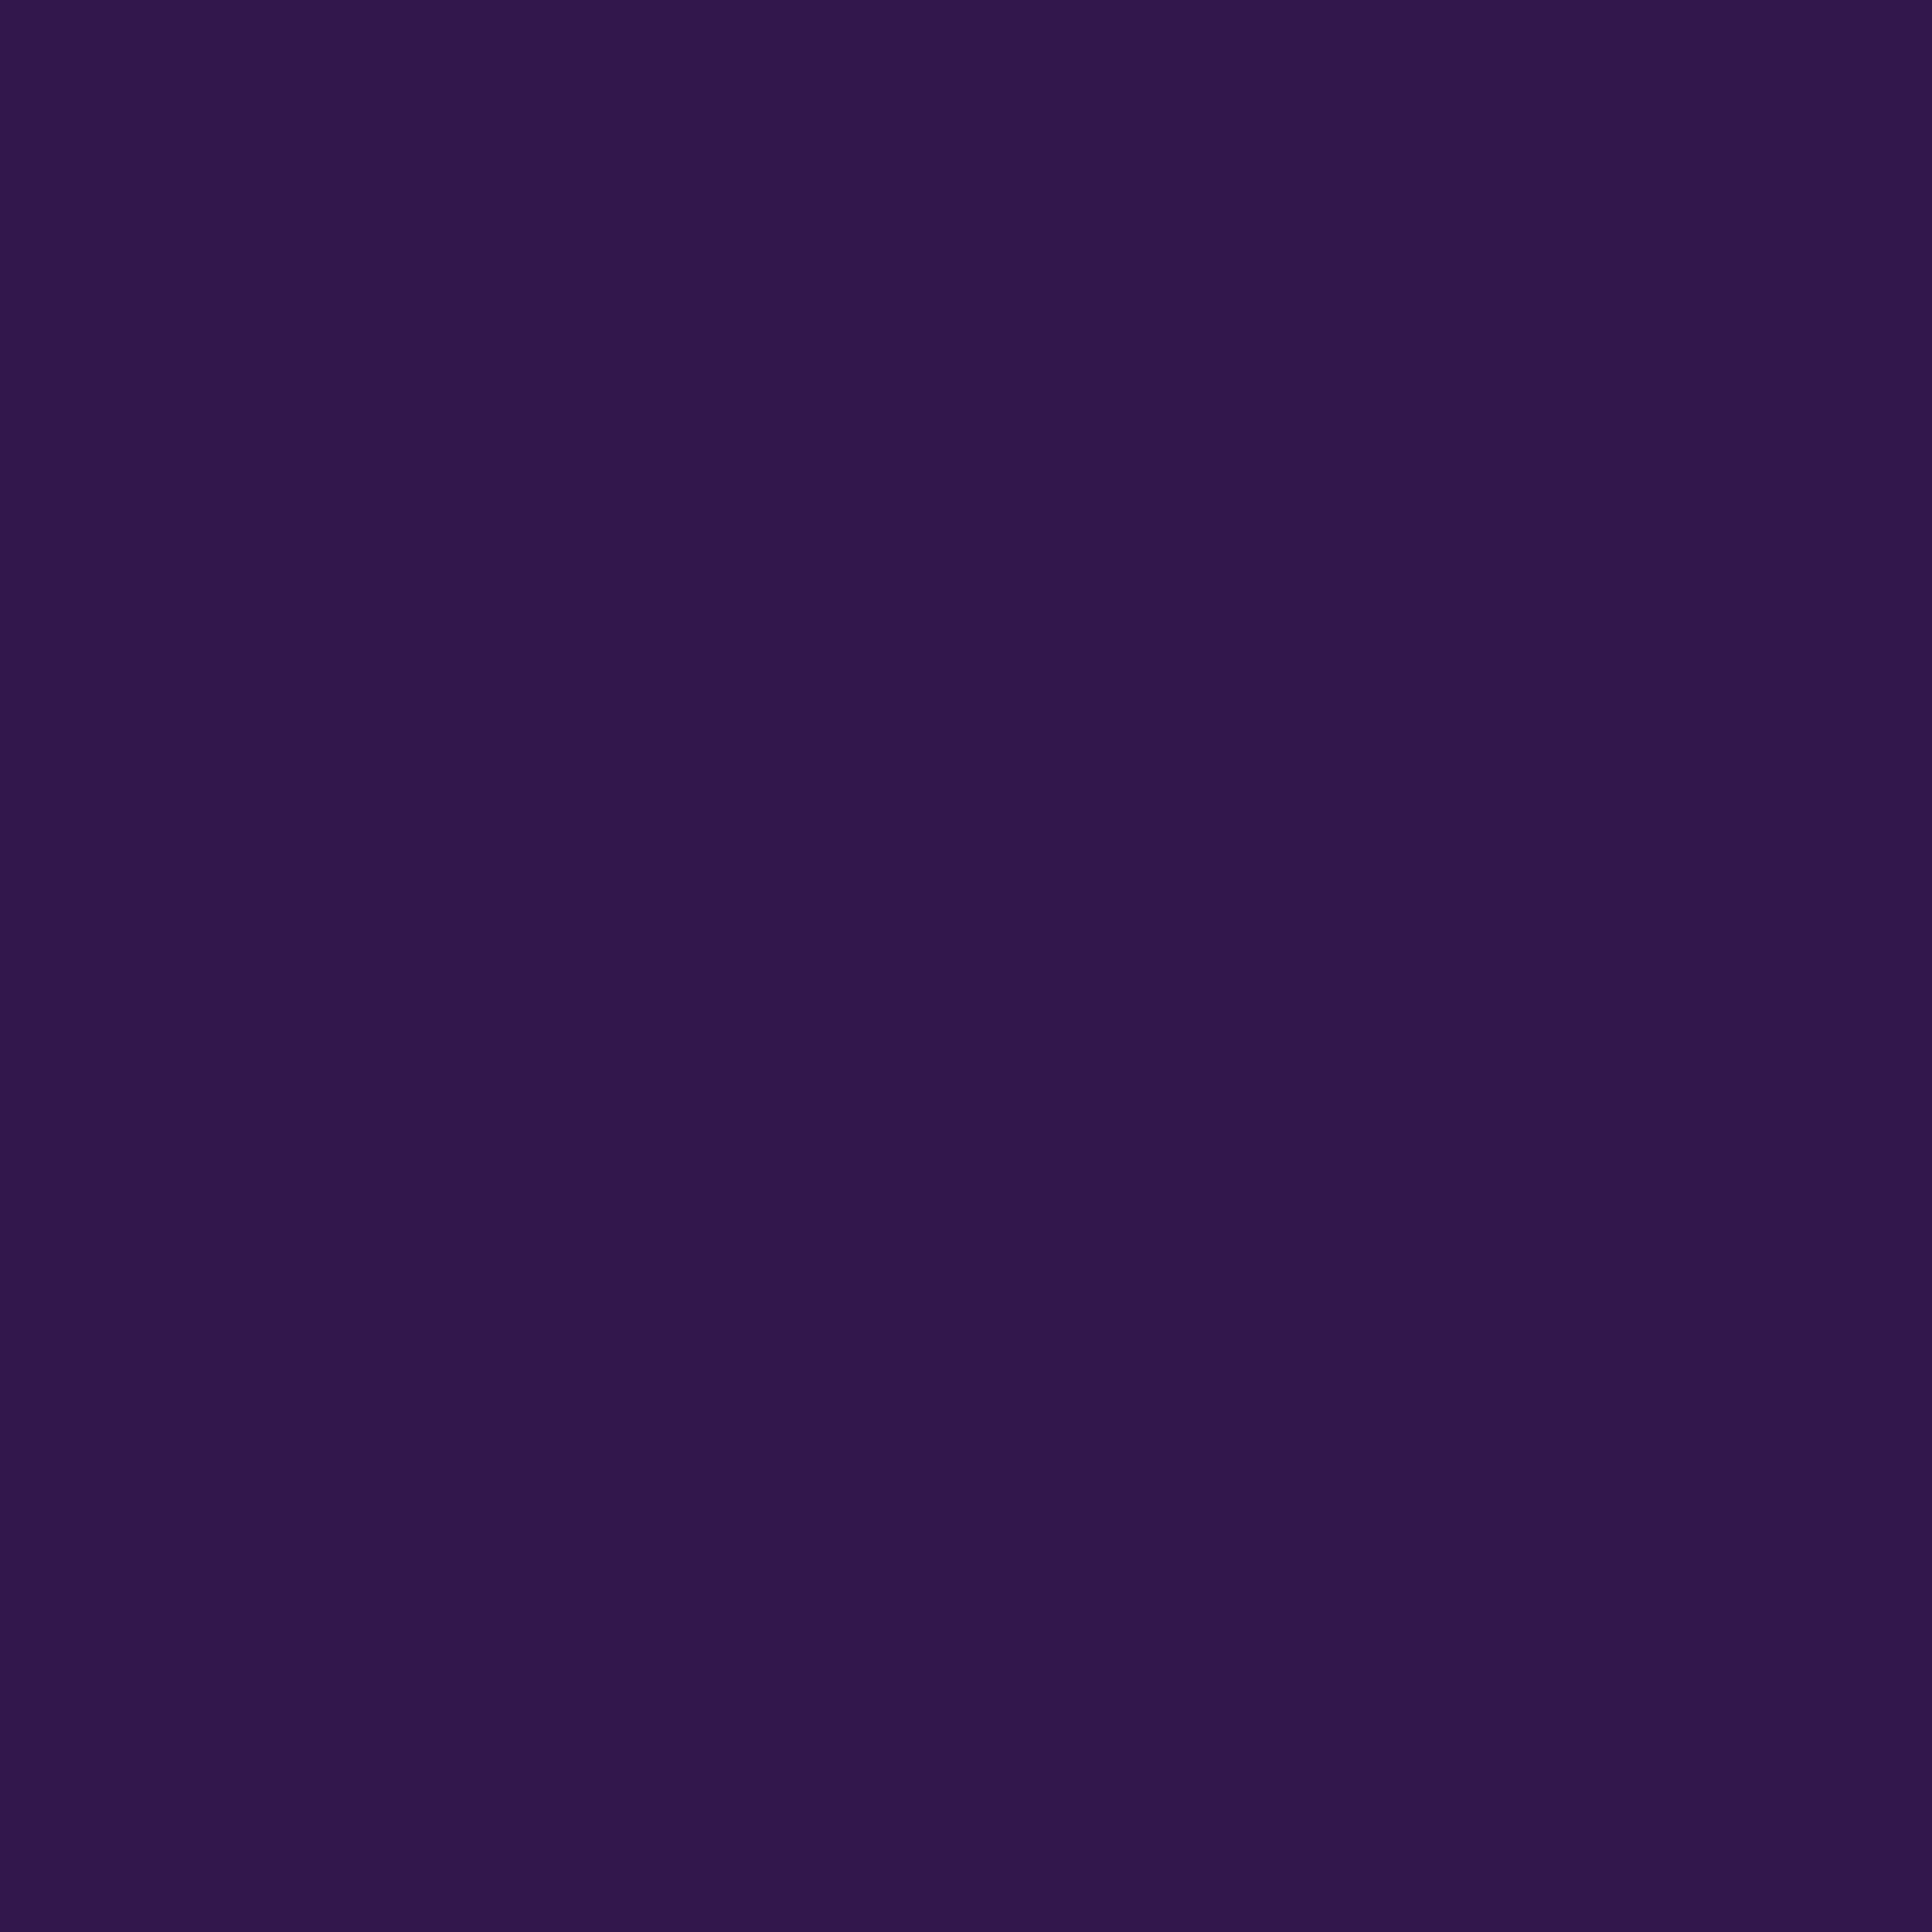 3600x3600 Russian Violet Solid Color Background